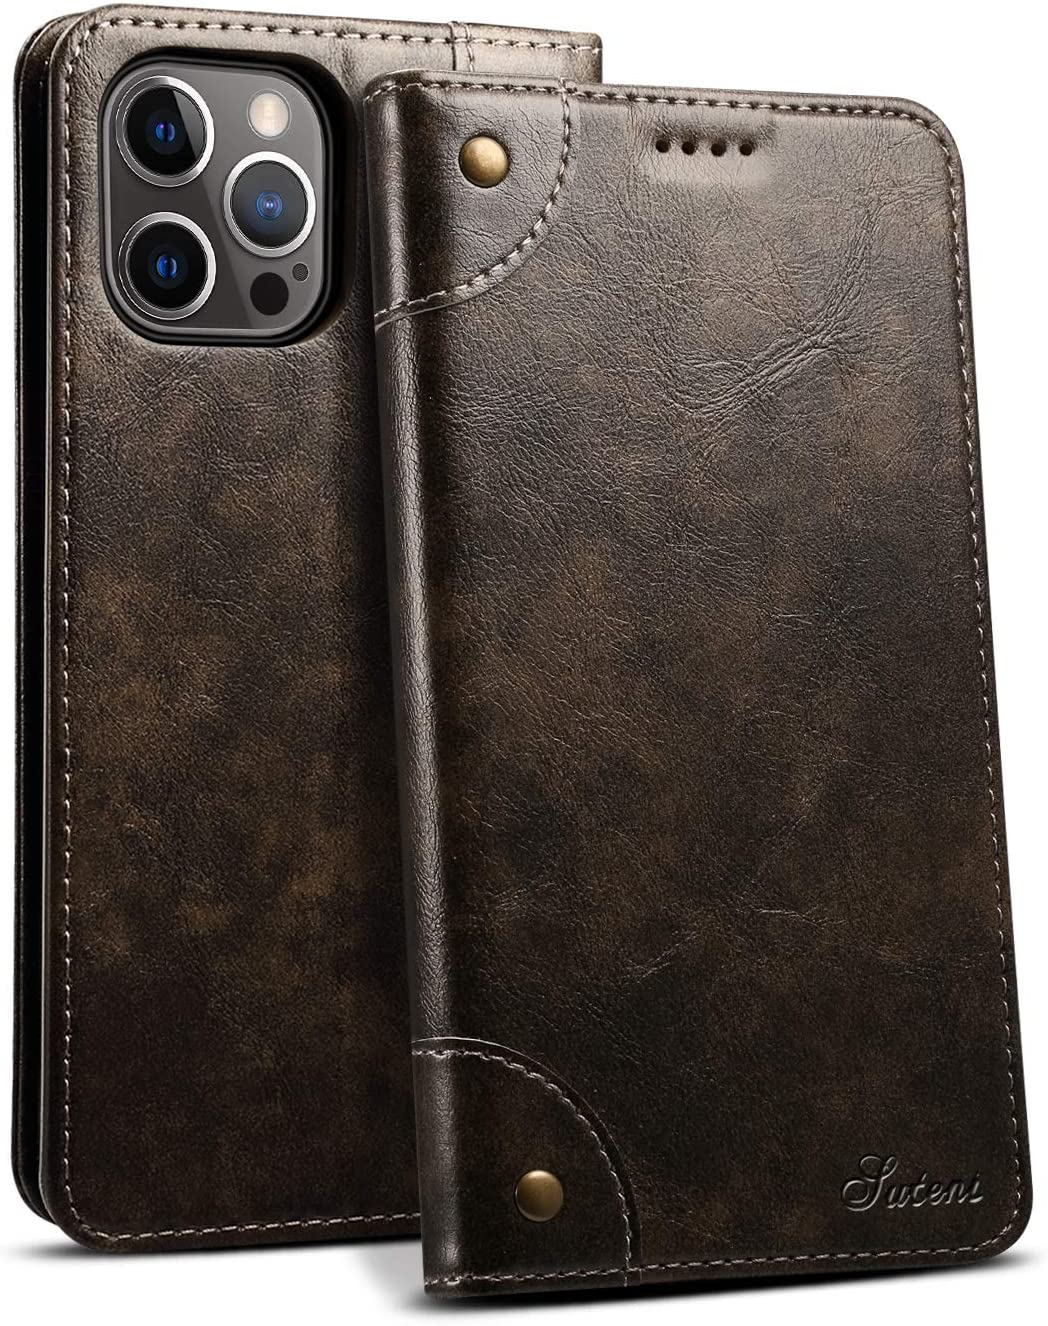 Case for iPhone 12 Pro Max 2020 5G 6.7 Money Card Black PU Leather Retro Texture Wallet Kickstand Shell for Men Women Fashion Protective Fold Shockproof Durable